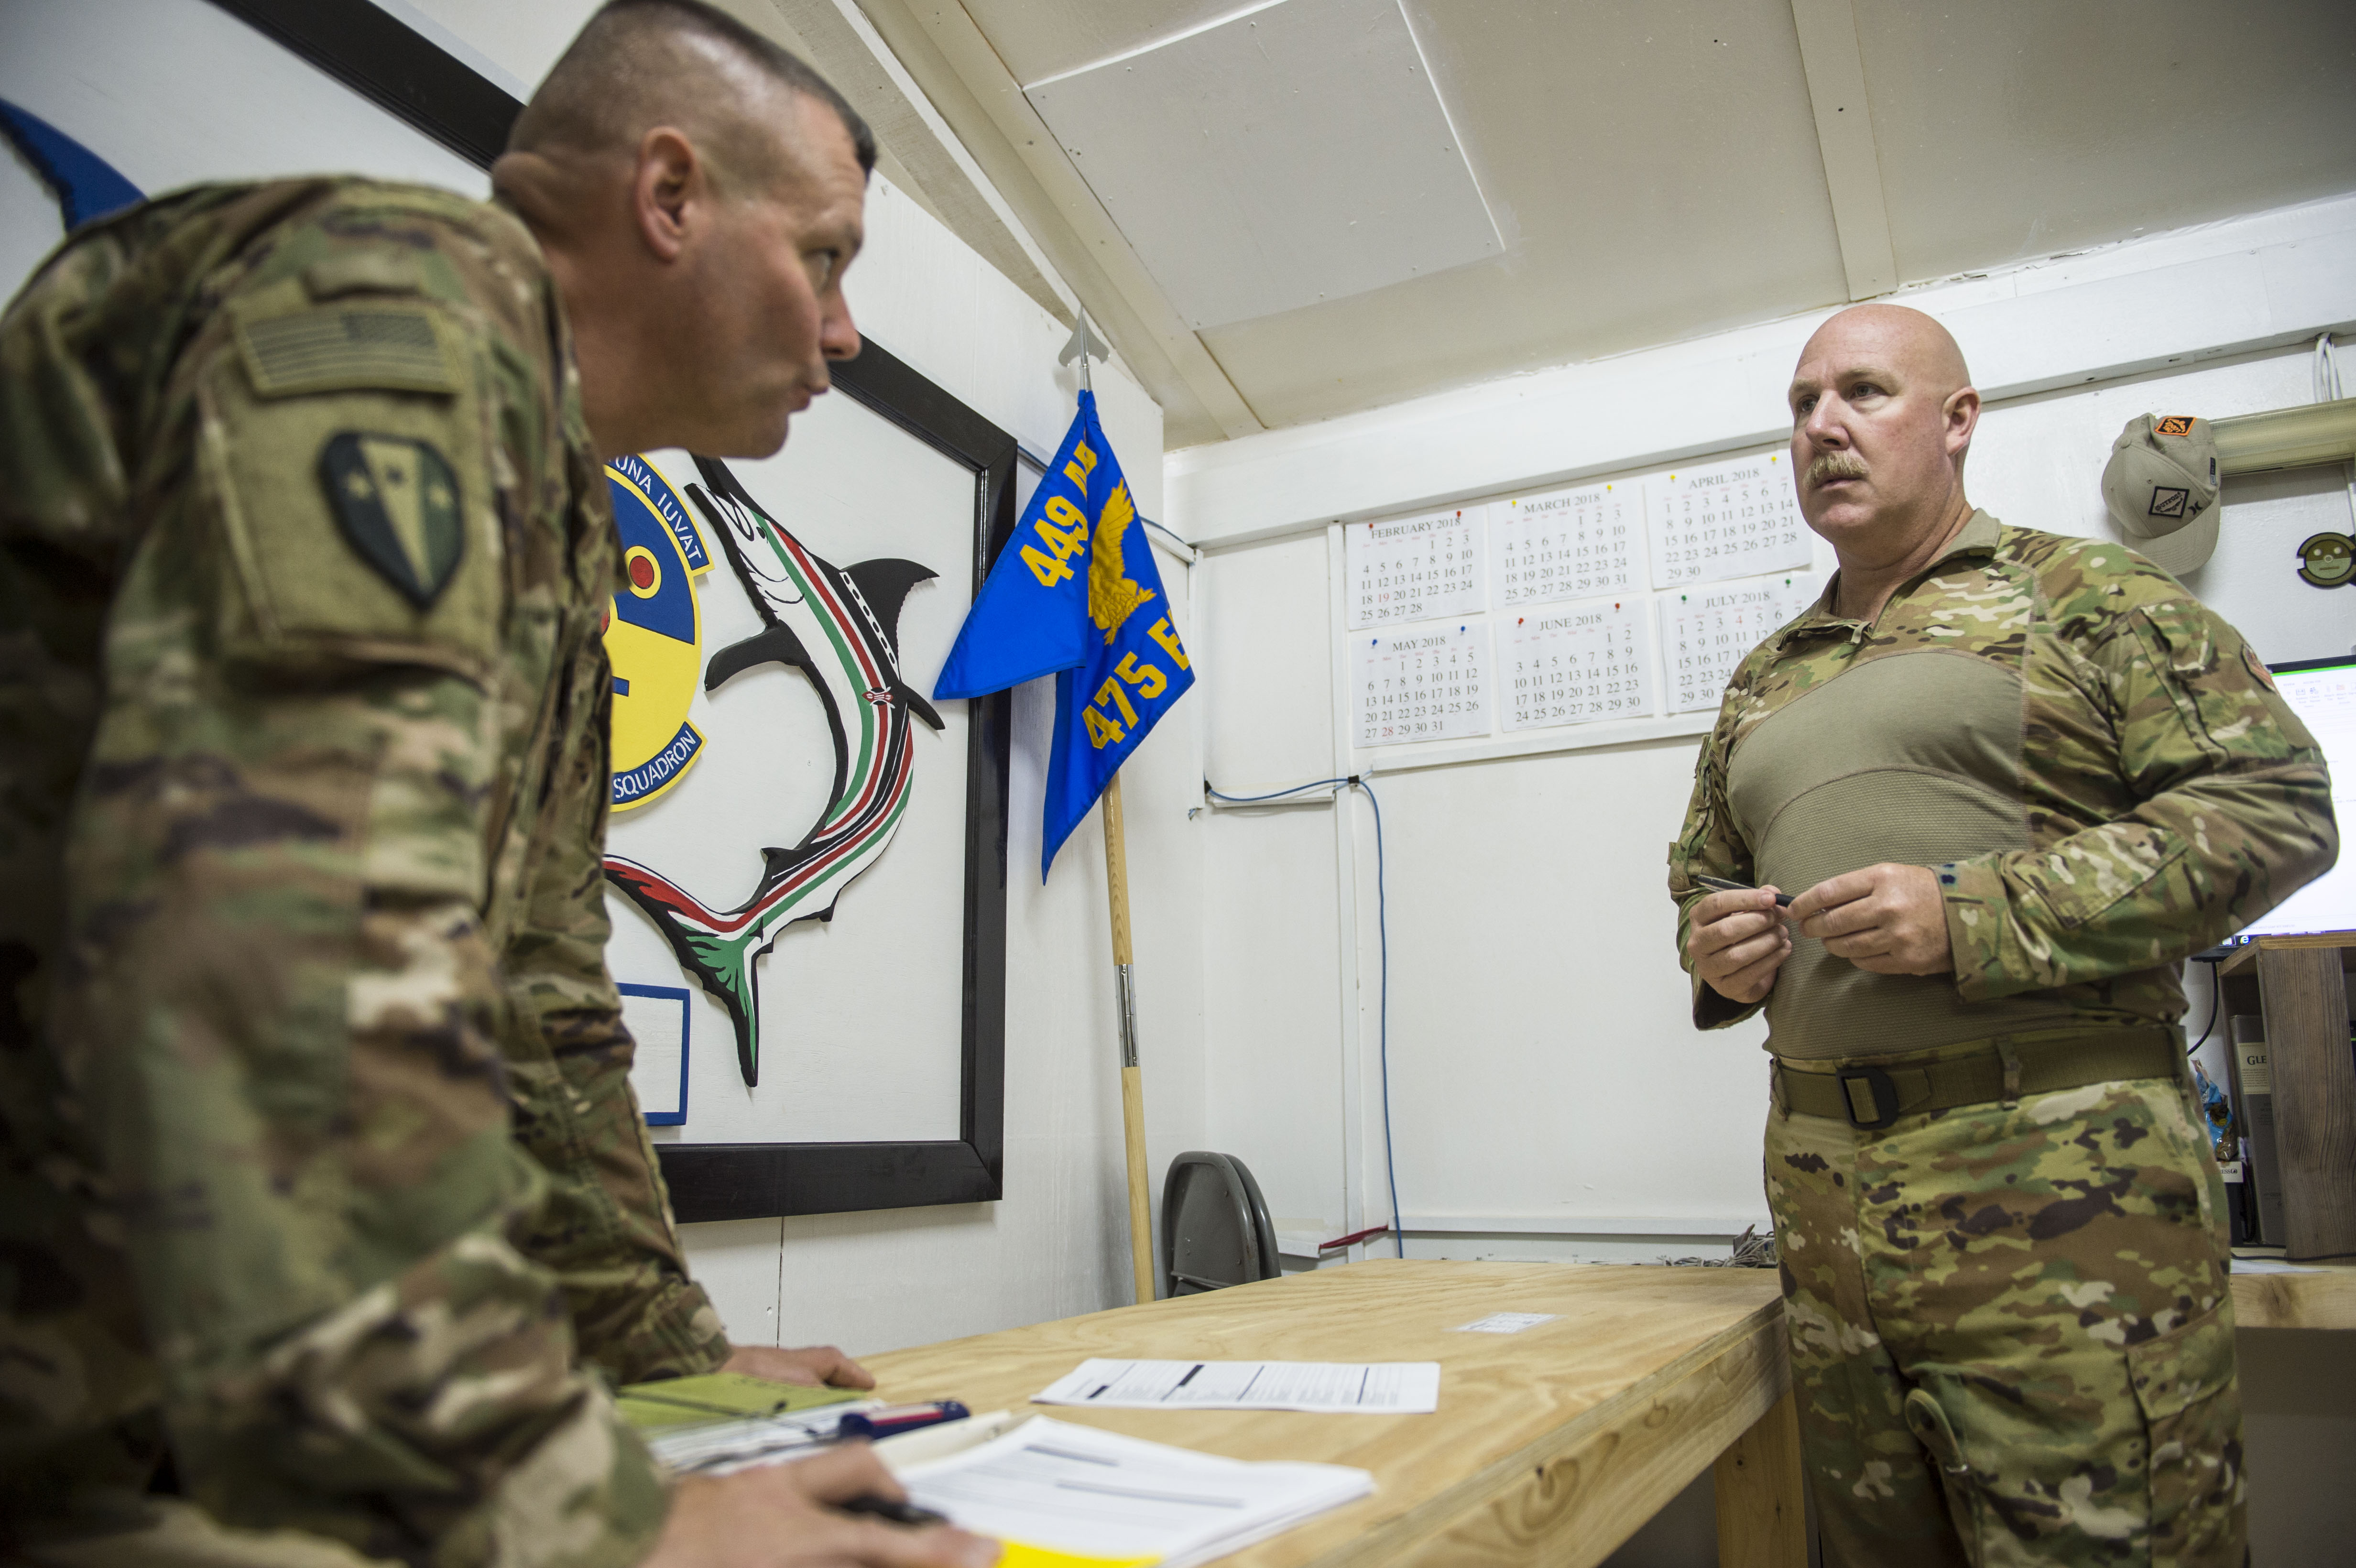 U.S. Army Lt. Col. Todd Martin, left, safety officer assigned to the Combined Joint Task Force - Horn of Africa (CJTF-HOA) Safety directorate, speaks with U.S. Air Force Lt. Col. Vance Goodfellow, 475th Expeditionary Air Base Squadron (EABS) commander, about a safety inspection he performed during a battlefield circulation site visit at Camp Simba in Manda Bay, Kenya, Feb. 24, 2018. Camp Simba is currently operated by the 475th EABS, who fall under the 435th Air Expeditionary Wing, but the property hosts CJTF-HOA personnel and is in the CJTF-HOA area of operations. As such, the CJTF-HOA Safety and Inspector General directorates provide support to the service members, Department of Defense civilians, and local national contractors who work on the camp. (U.S. Air Force photo by Staff Sgt. Timothy Moore)